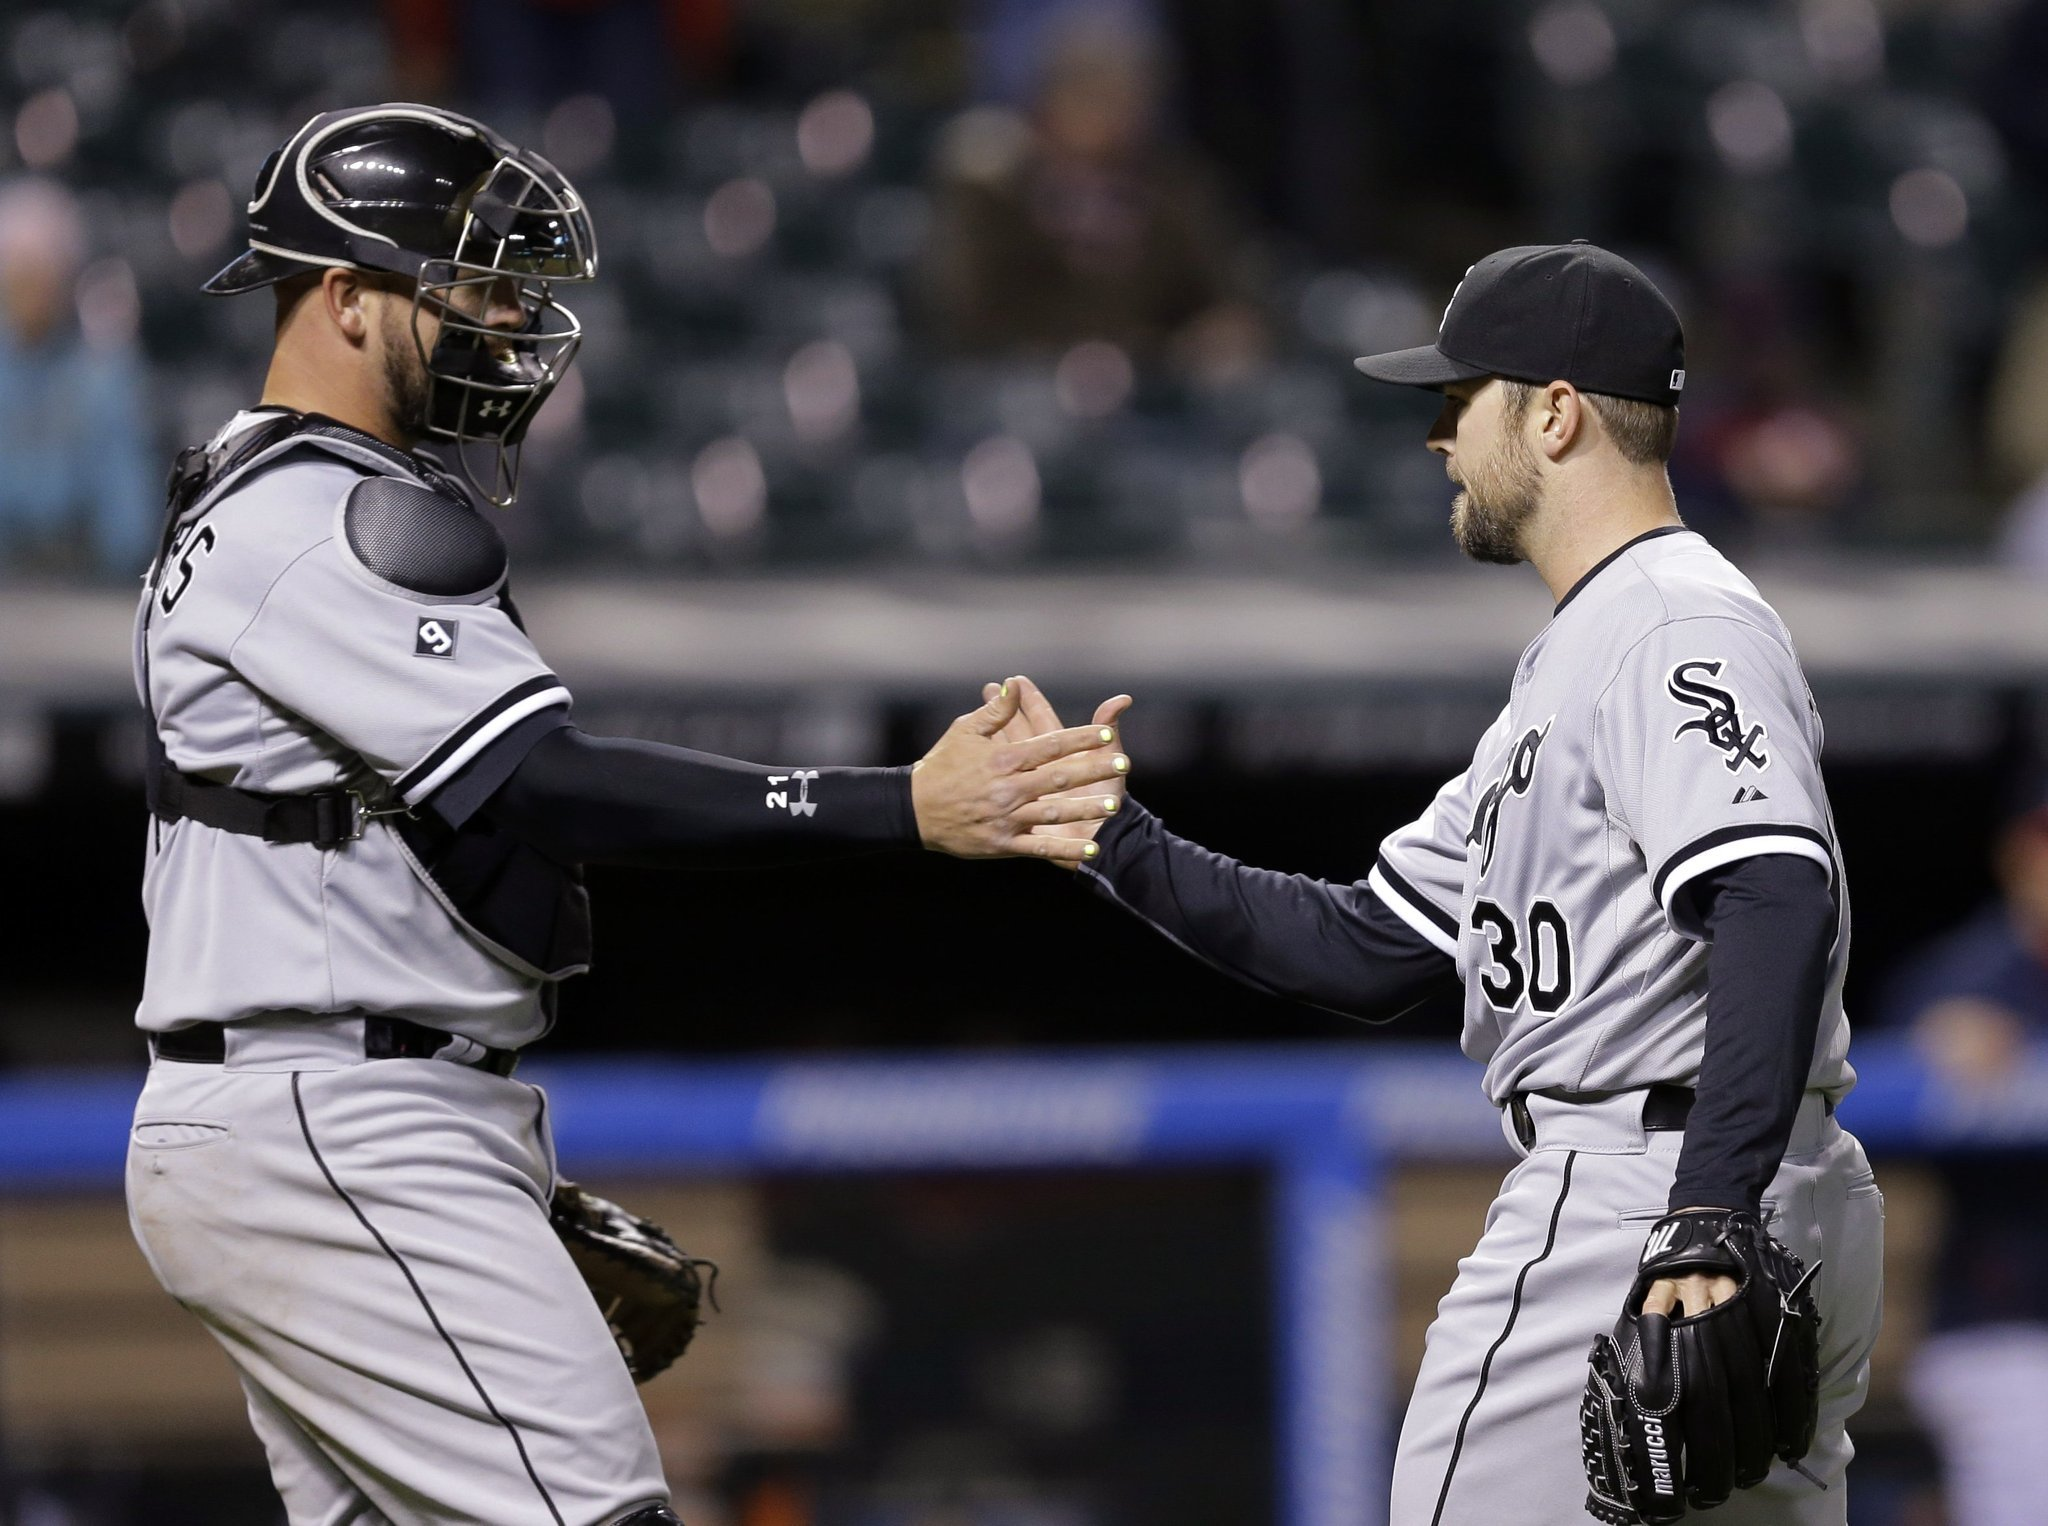 White Sox Ease To Victory After Scary Moment For Indians Pitcher